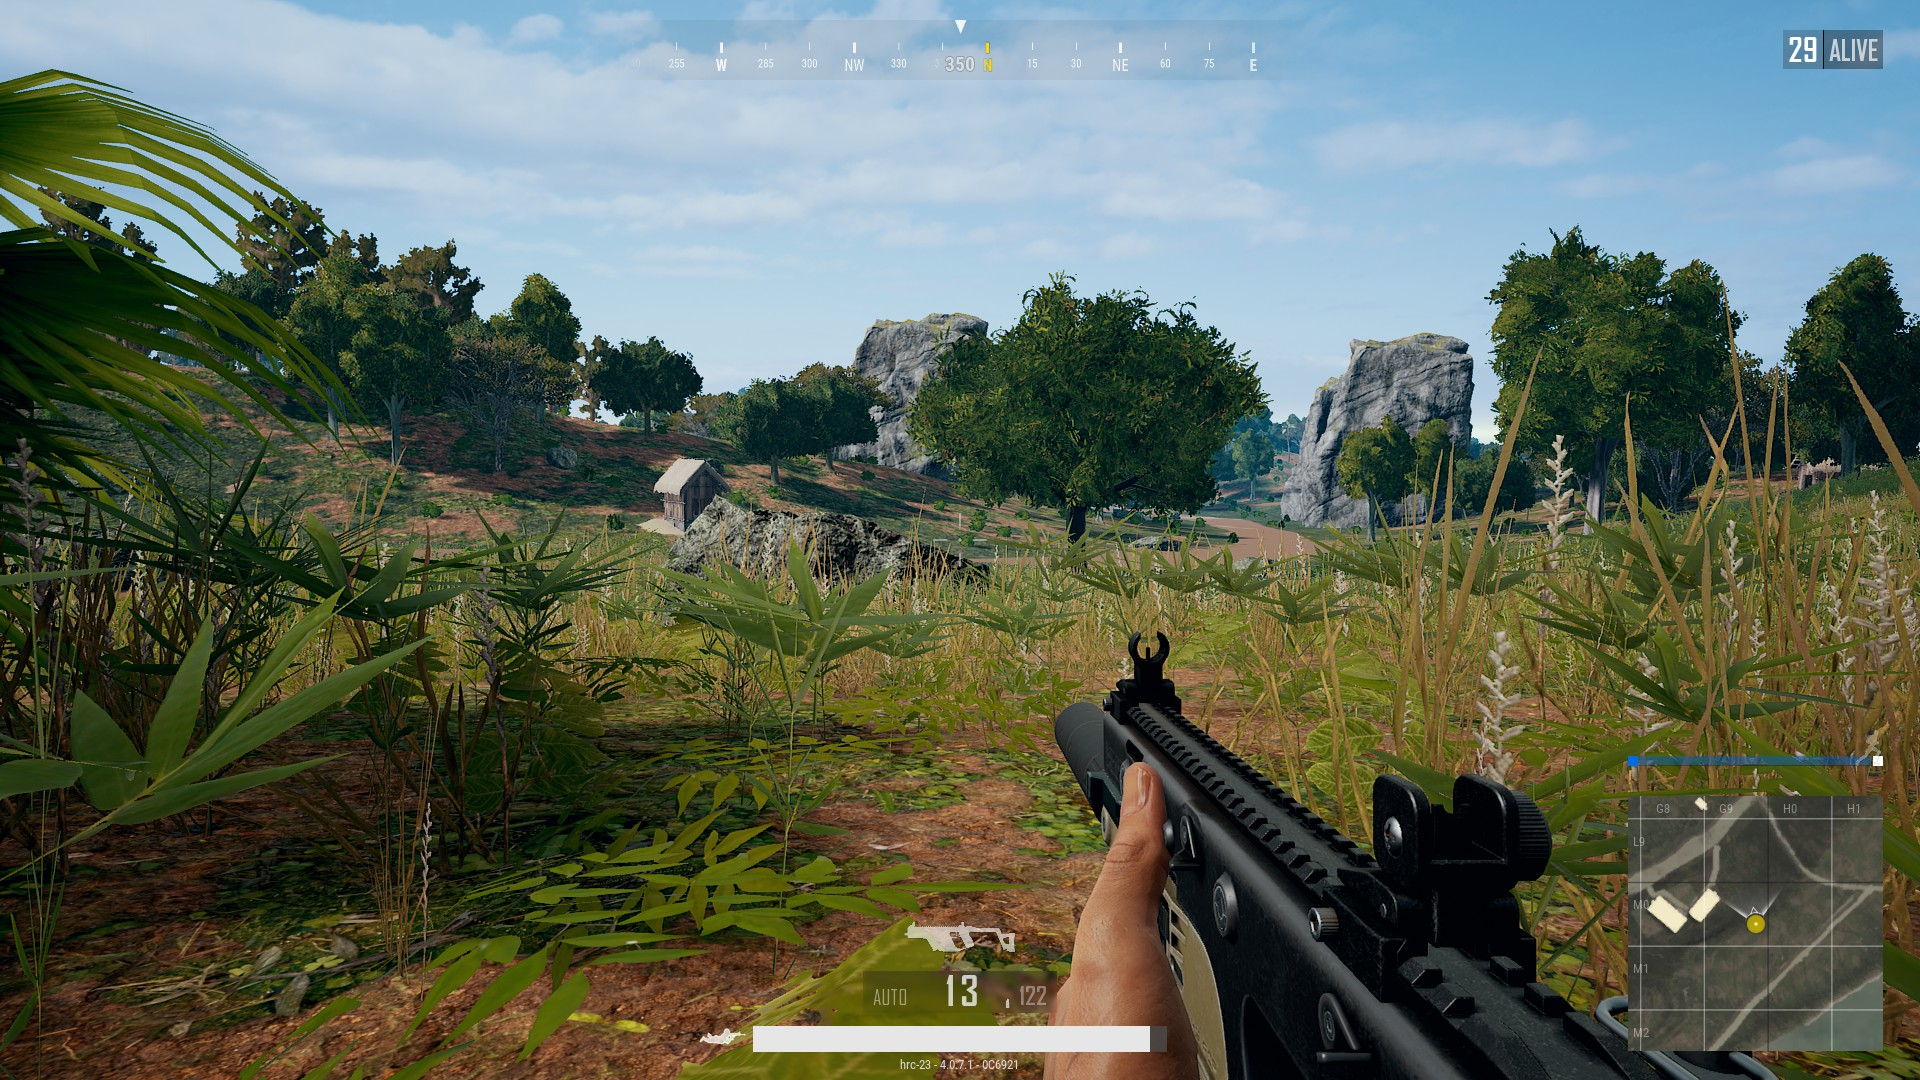 PUBG Sanhok Map Guide Tips And Tricks -How To Master The